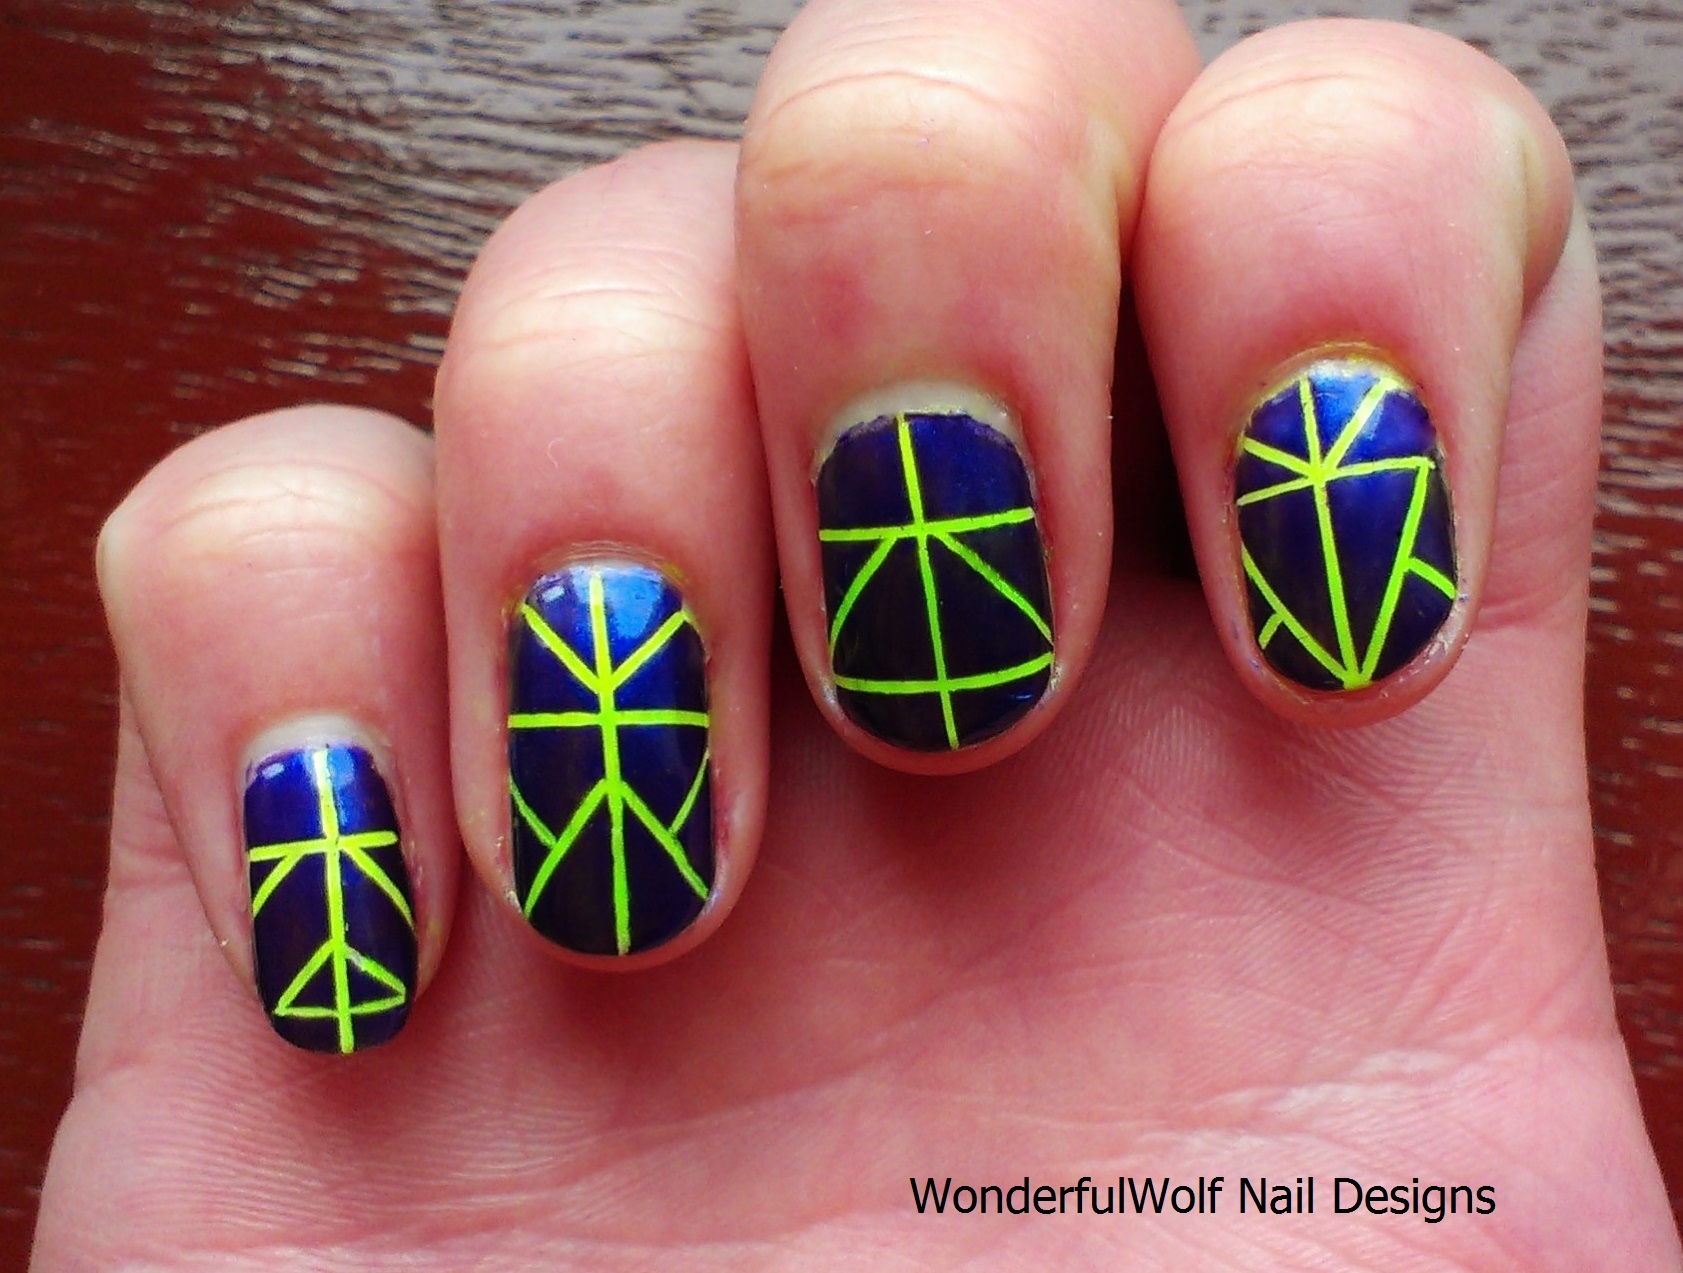 how to put designs on nails with tape